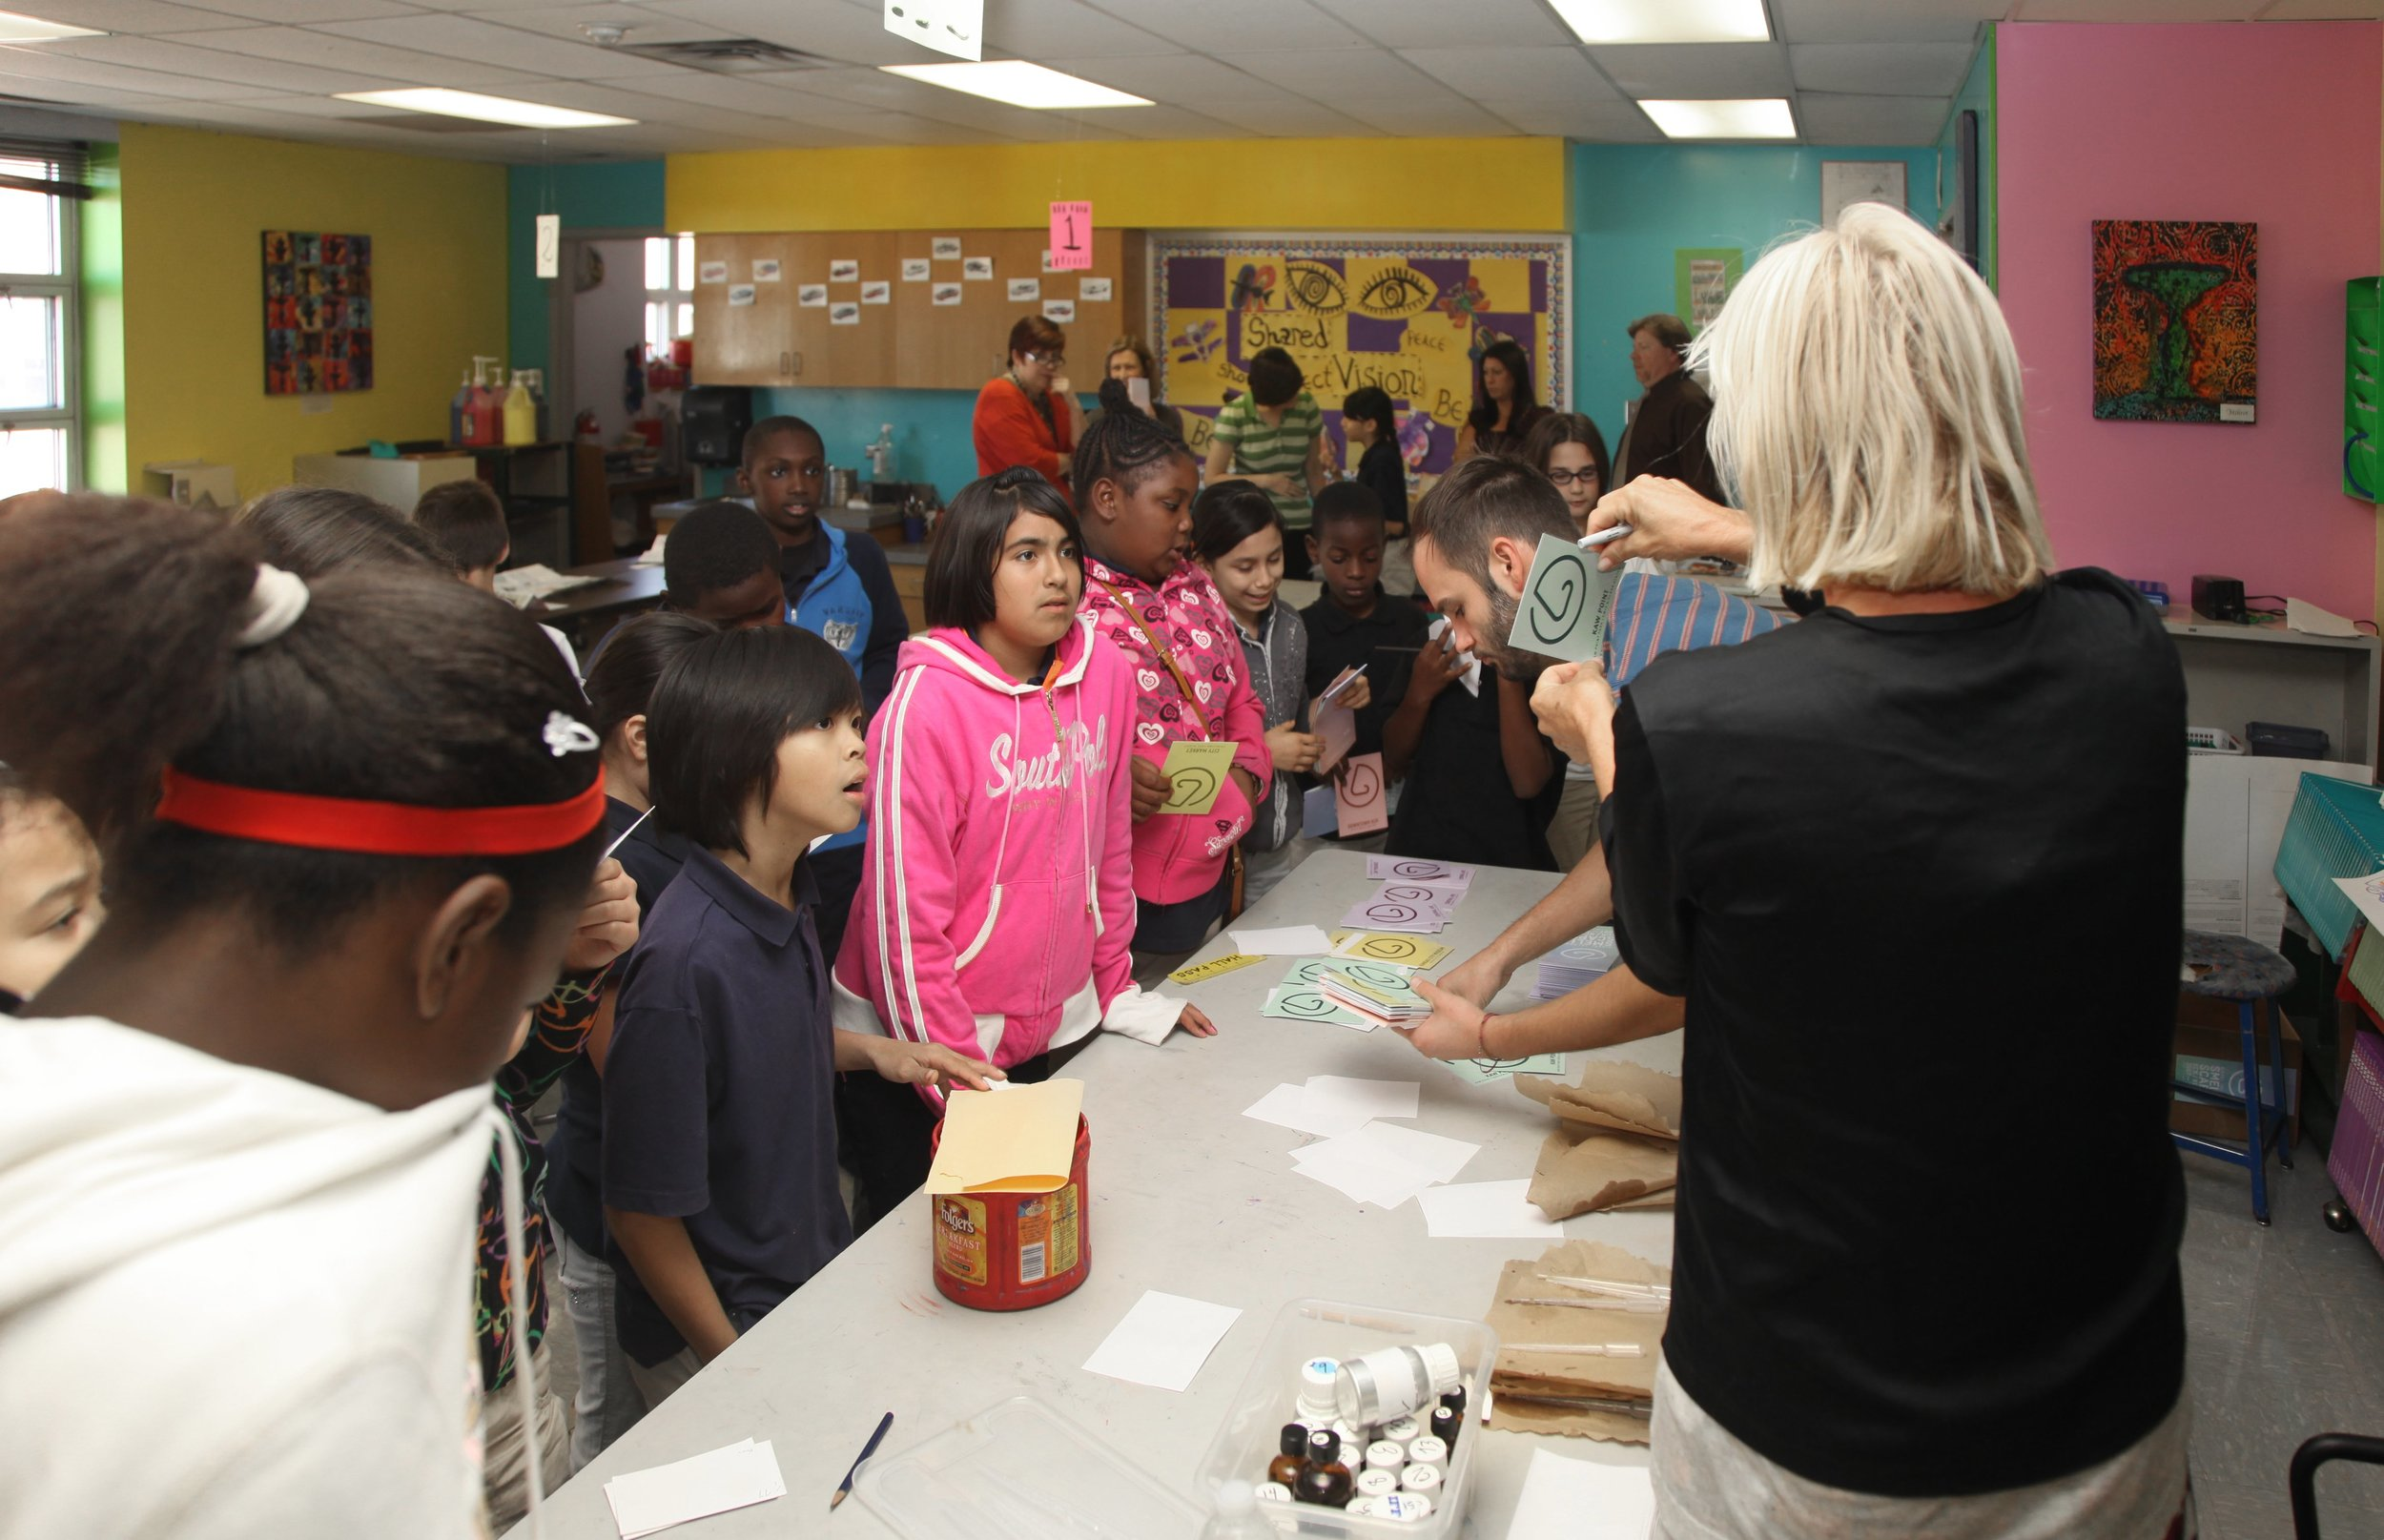 Smell Workshop with artist Sissel Tolaas and students from Alta Vista Charter Middle School, Kansas City, Missouri, 2012. (photo: Megan Mantia)